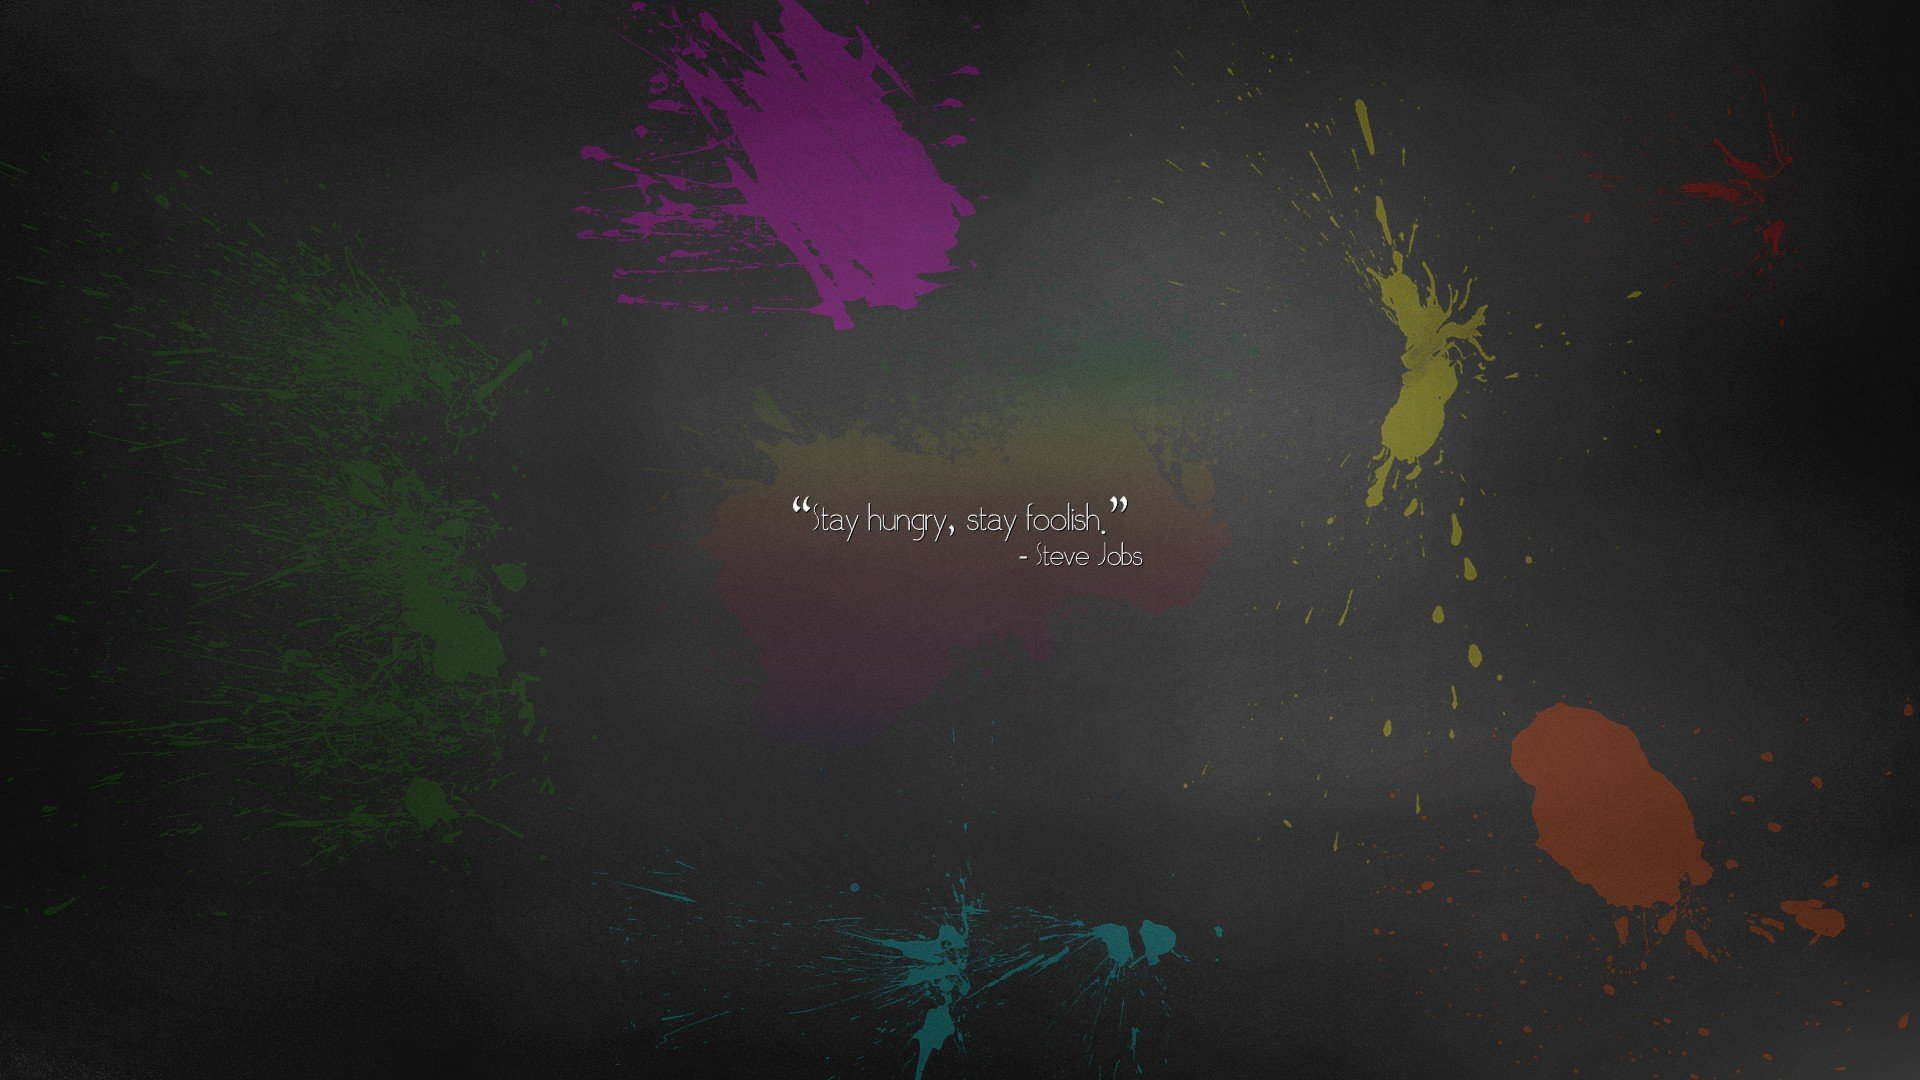 Iphone 6 Wallpaper Steve Jobs Quote Abstract Minimalistic Apple Inc Quotes Paint Rainbows